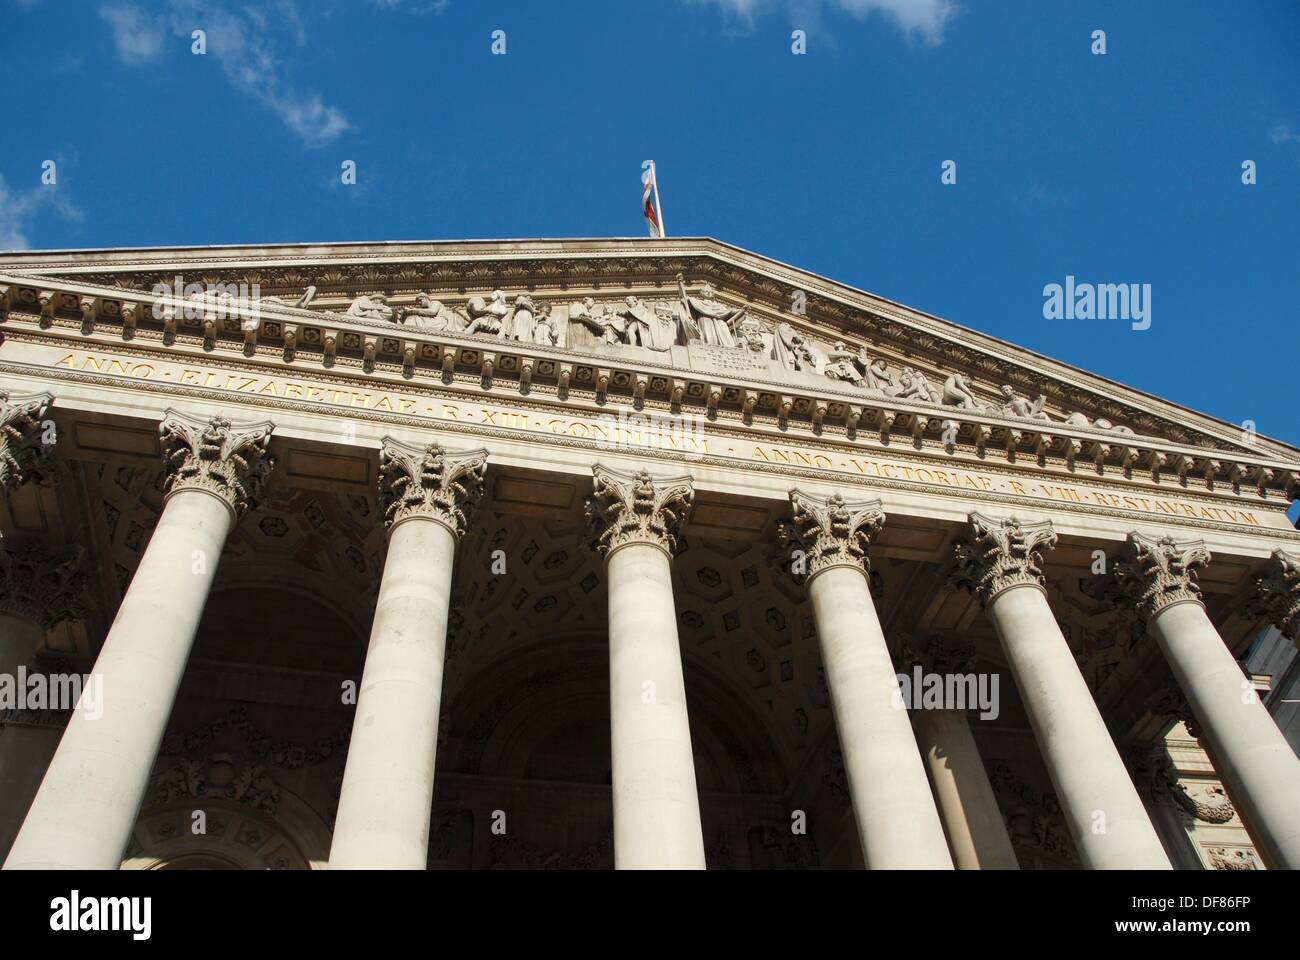 Royal Exchange luxury shopping centre in The City, London, Great Britain, Europe. - Stock Image